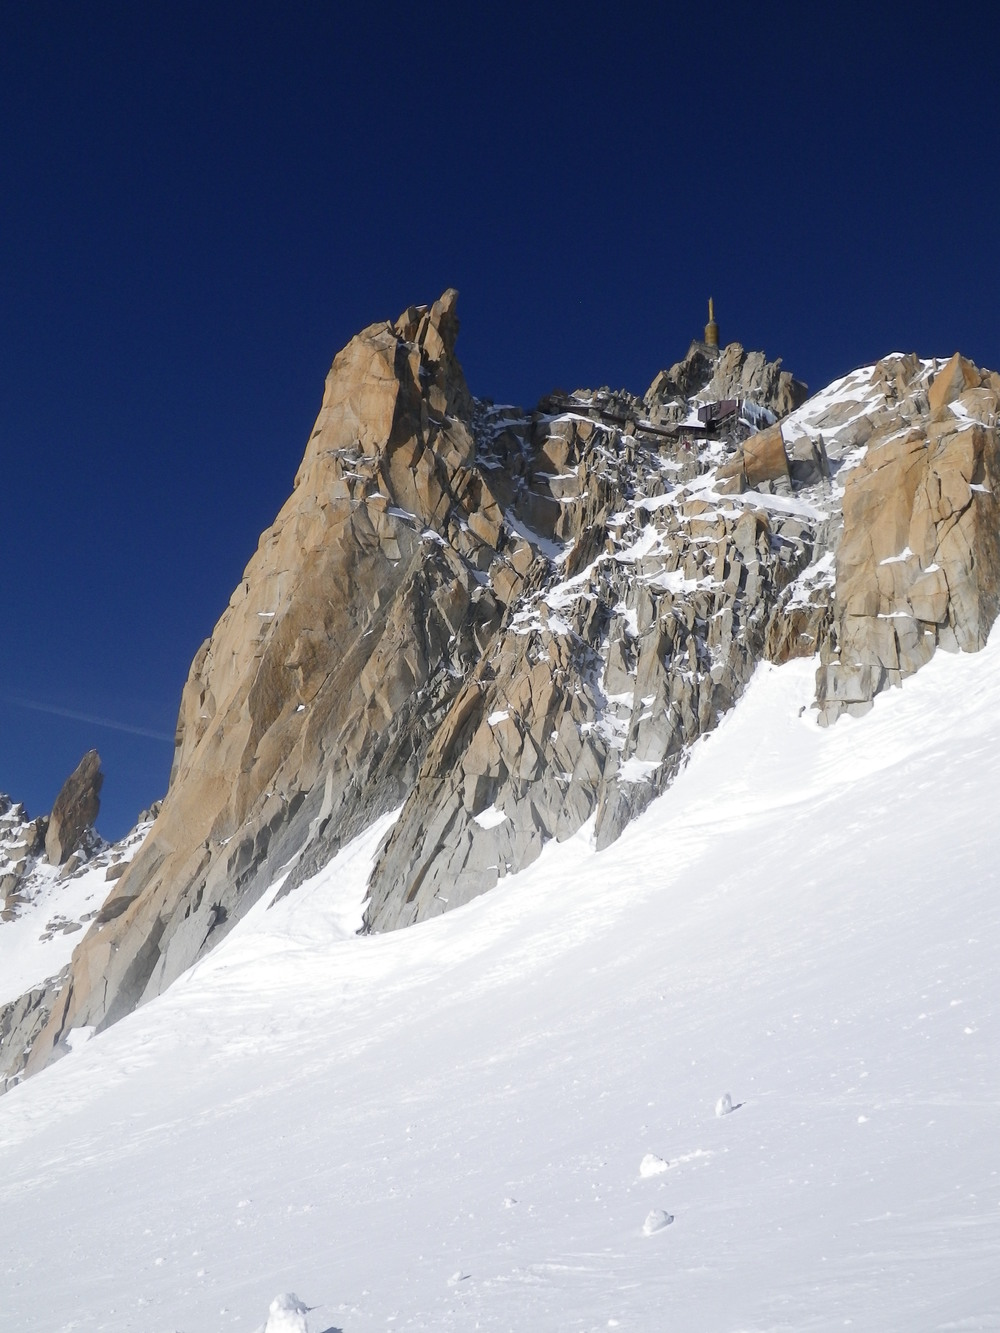 Looking back to the Aiguille du Midi cable car station